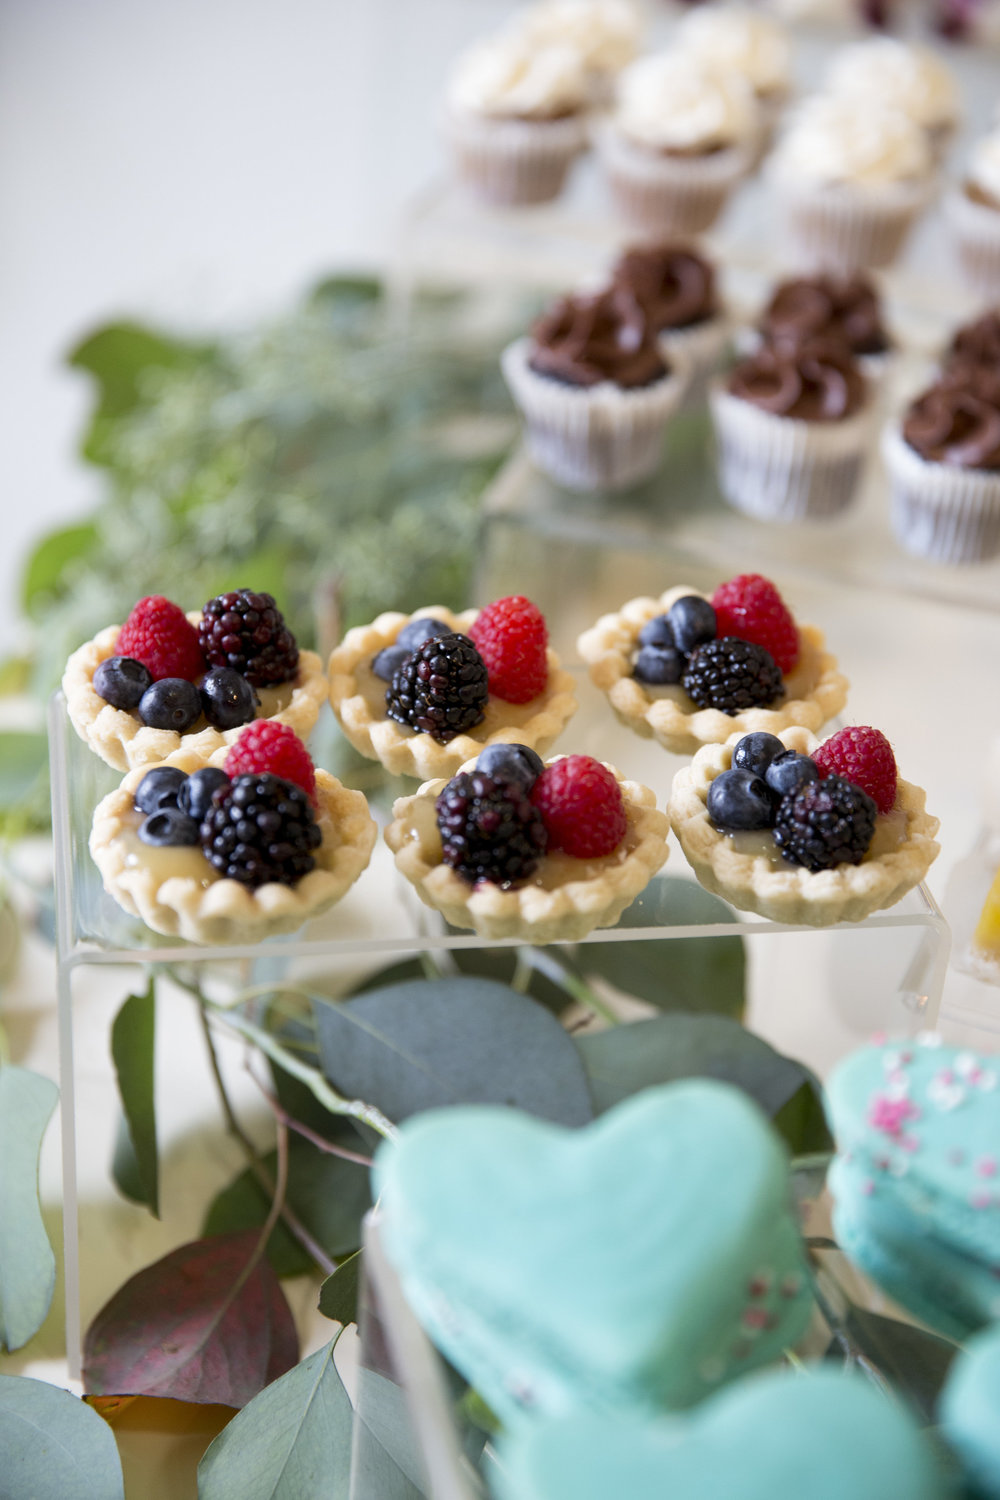 www.santabarbaraweddingstyle | dessert buffet | Dessert ideas | fruit tarts | lele patisserie | Kristen Beinke Photography